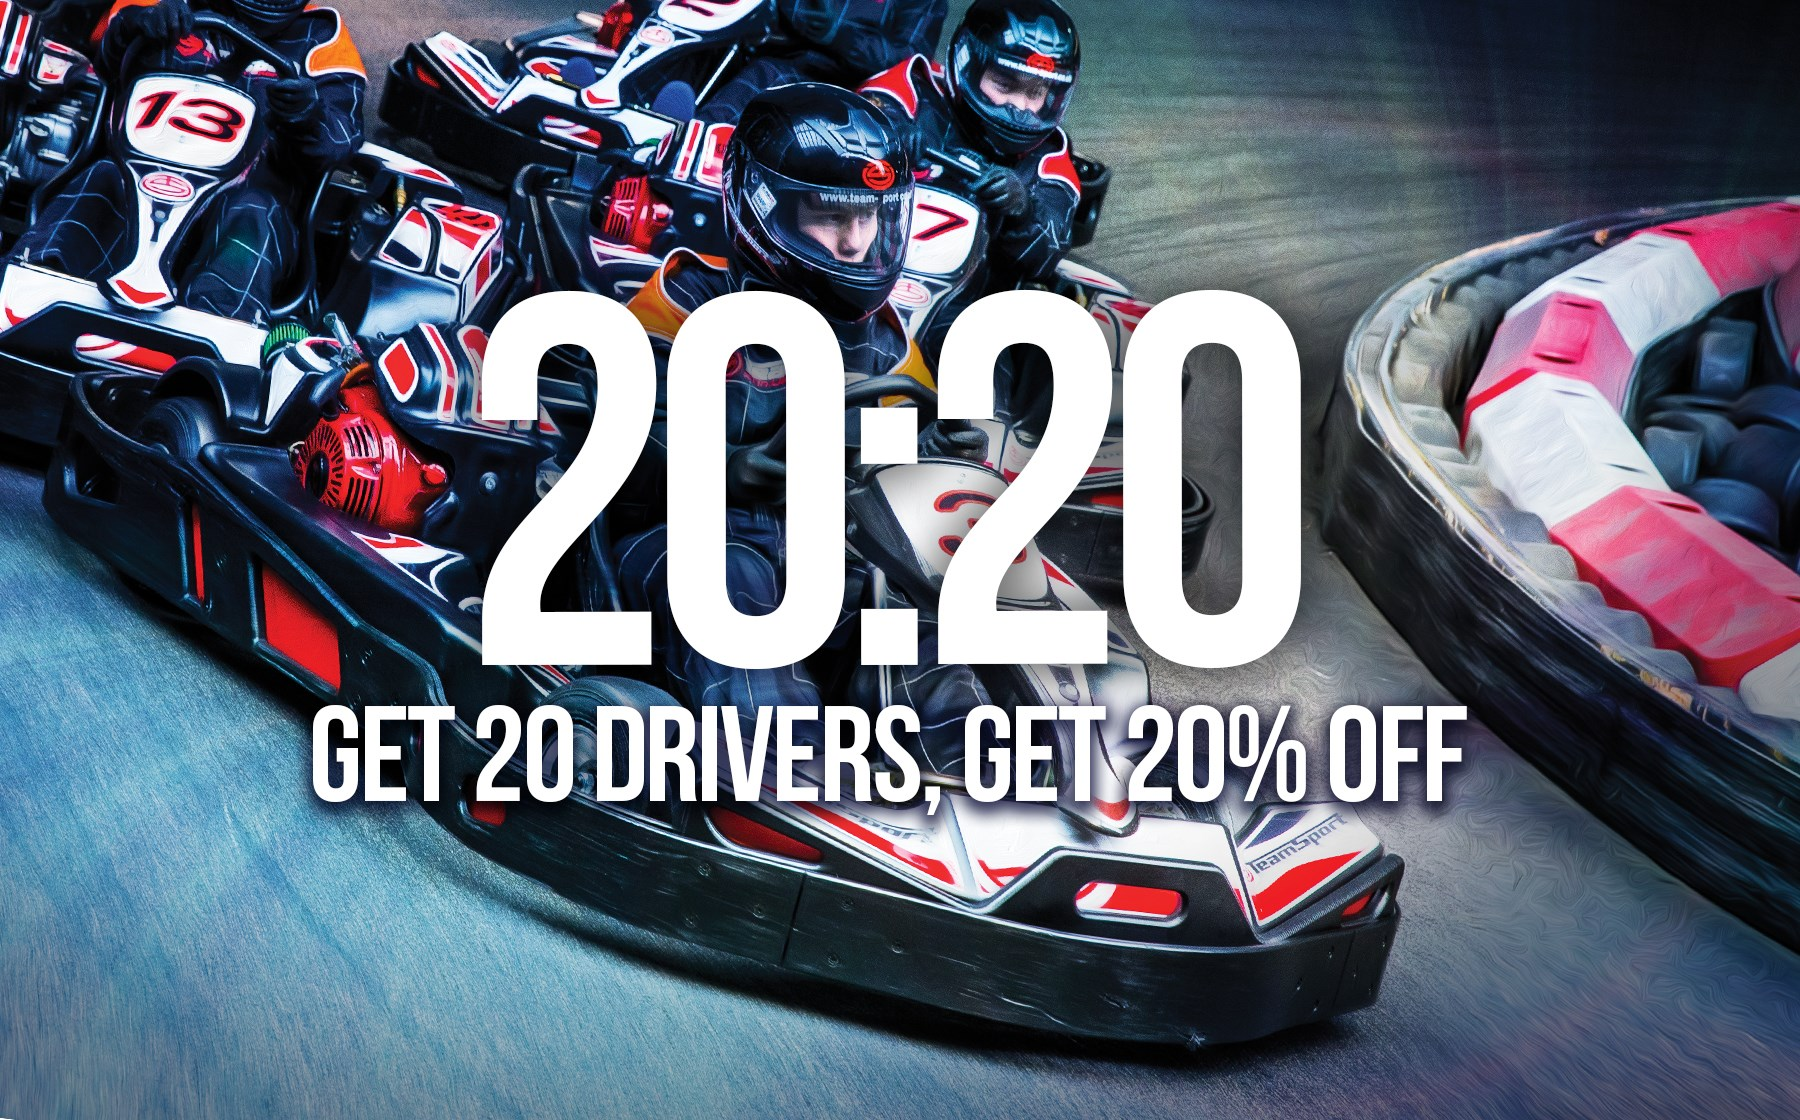 GO KARTING FOR 12+ DRIVERS - 20:20